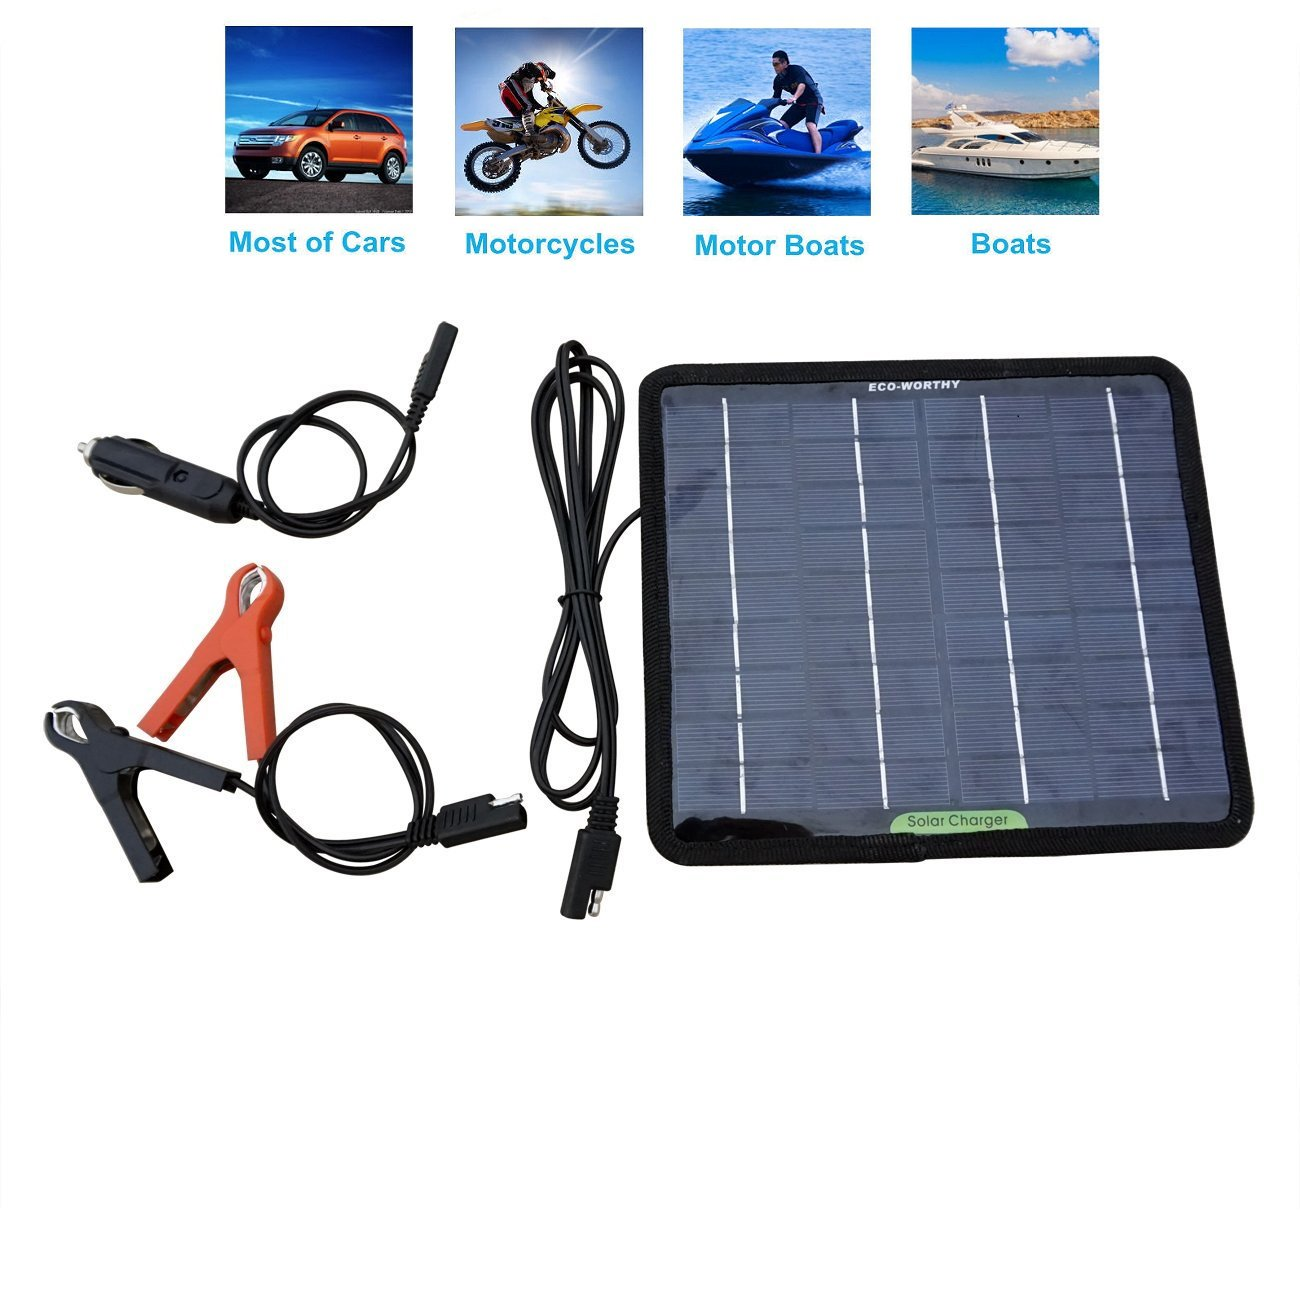 Eco Worthy 12 Volts 5 Watts Portable Power Solar Panel Battery Charger Backup For Car Boat Batteries The Is Electrical Energy Of Cells In Needs Garden Outdoor